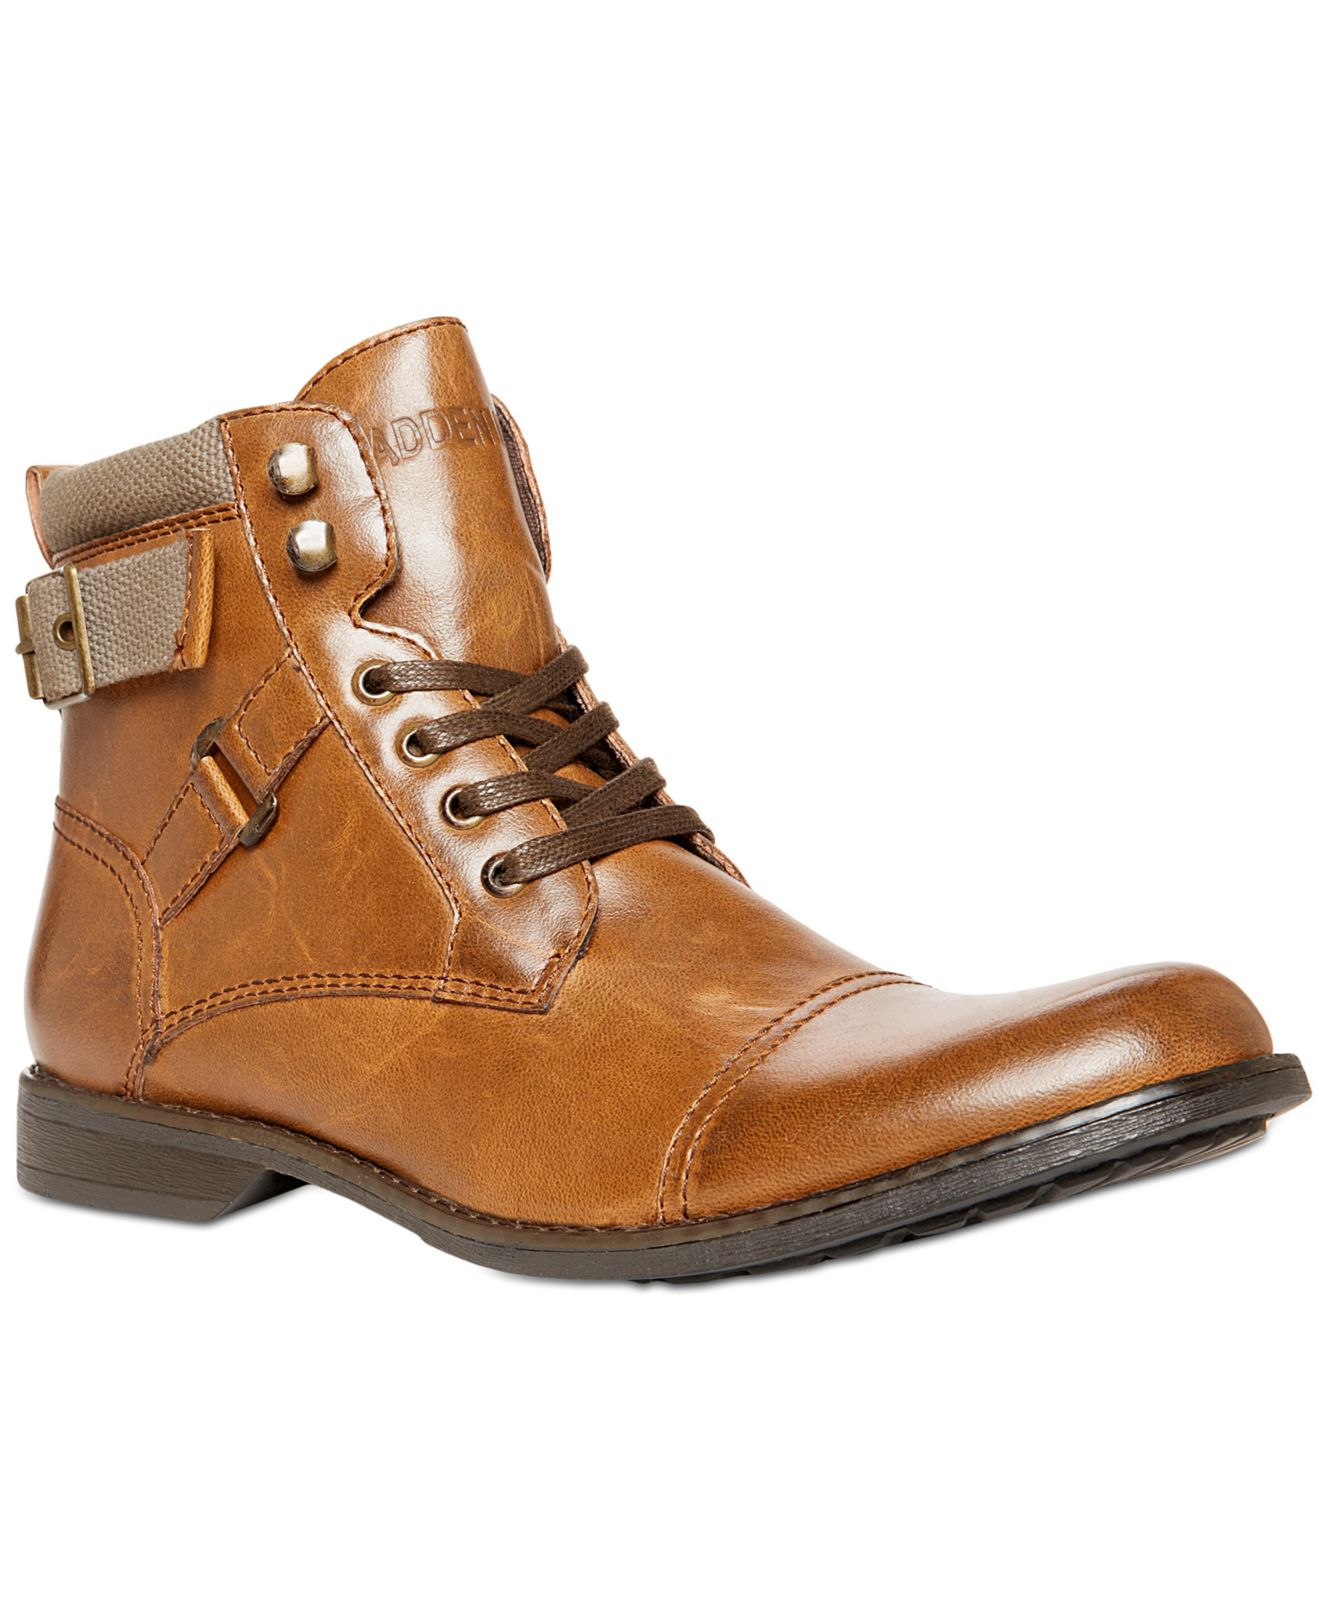 Lyst Steve Madden Madden Kooper Lace Up Boots In Brown